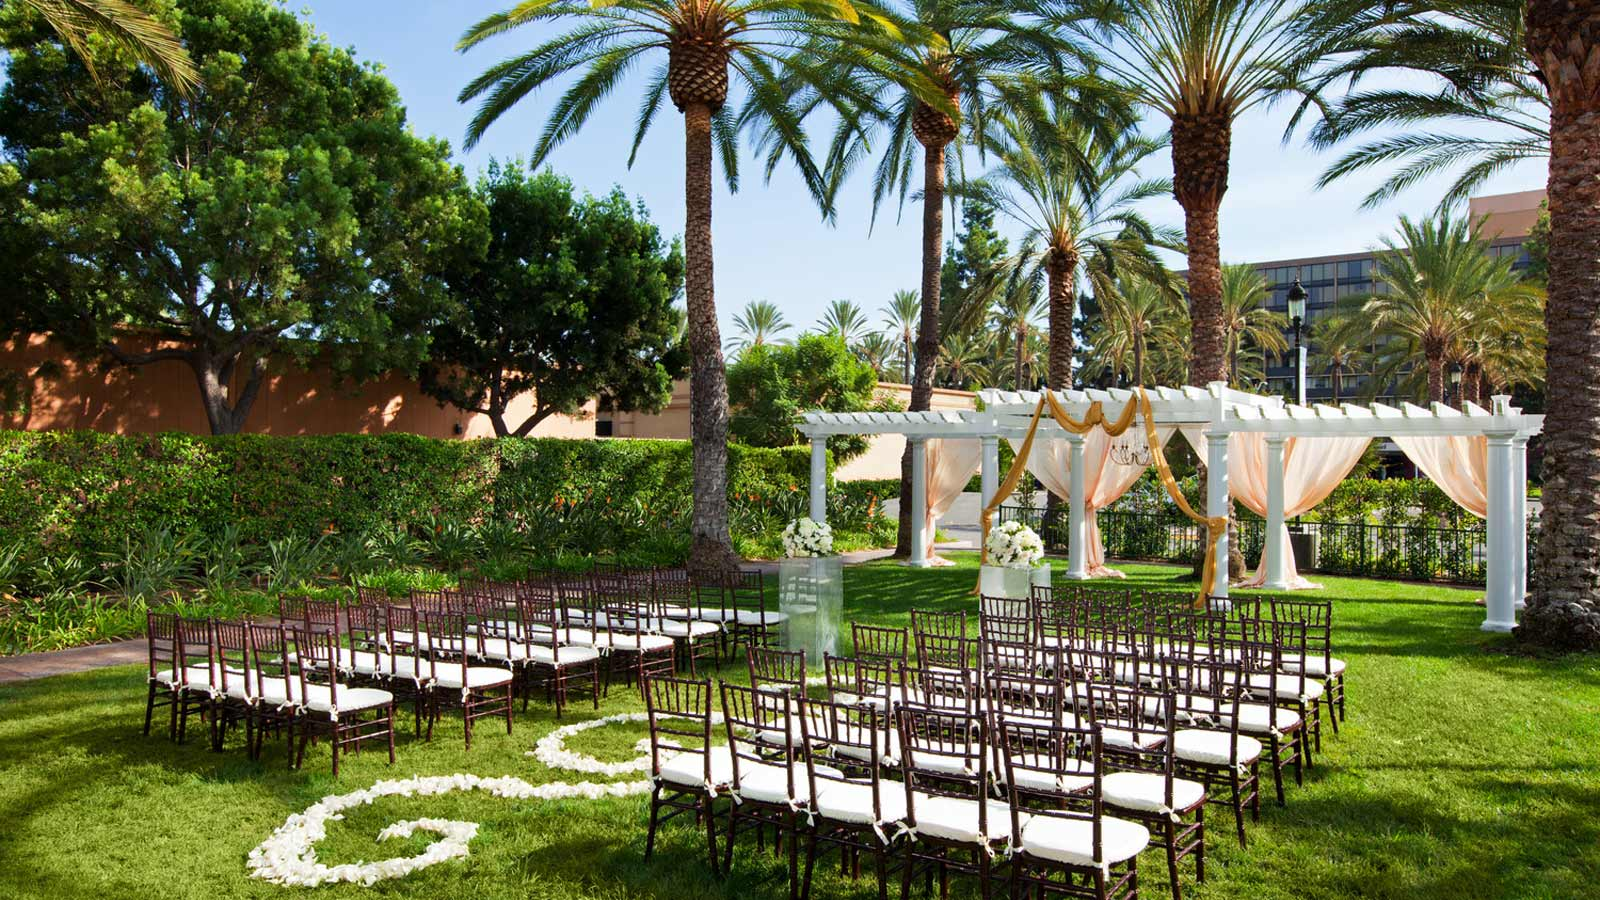 Outdoor Wedding Venues: Sheraton Park Hotel At The